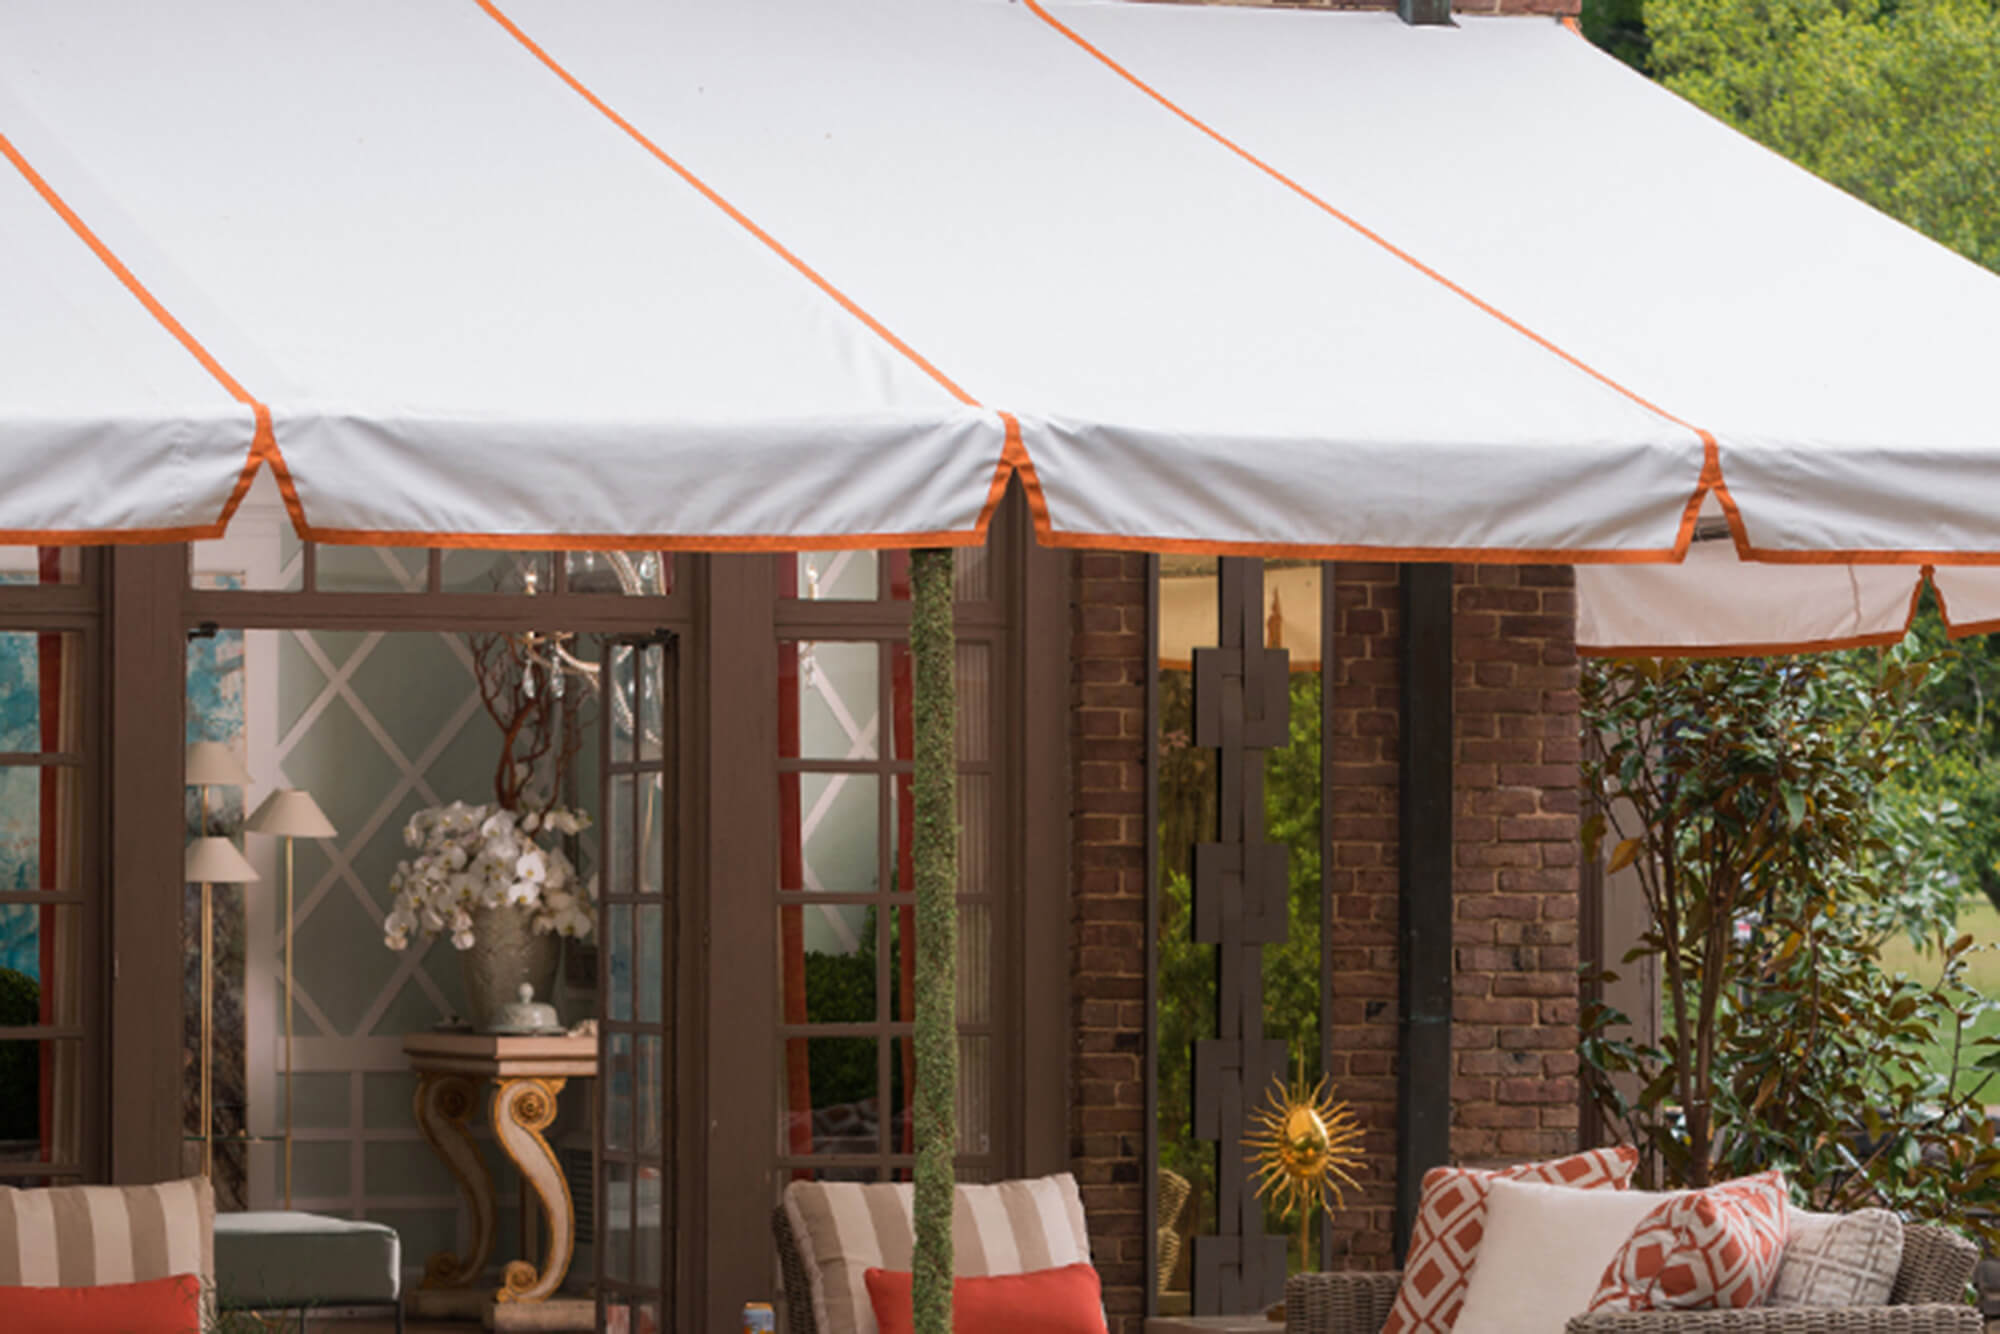 A patio is shaded by a fixed frame awning with white Sunbrella fabric and orange trim